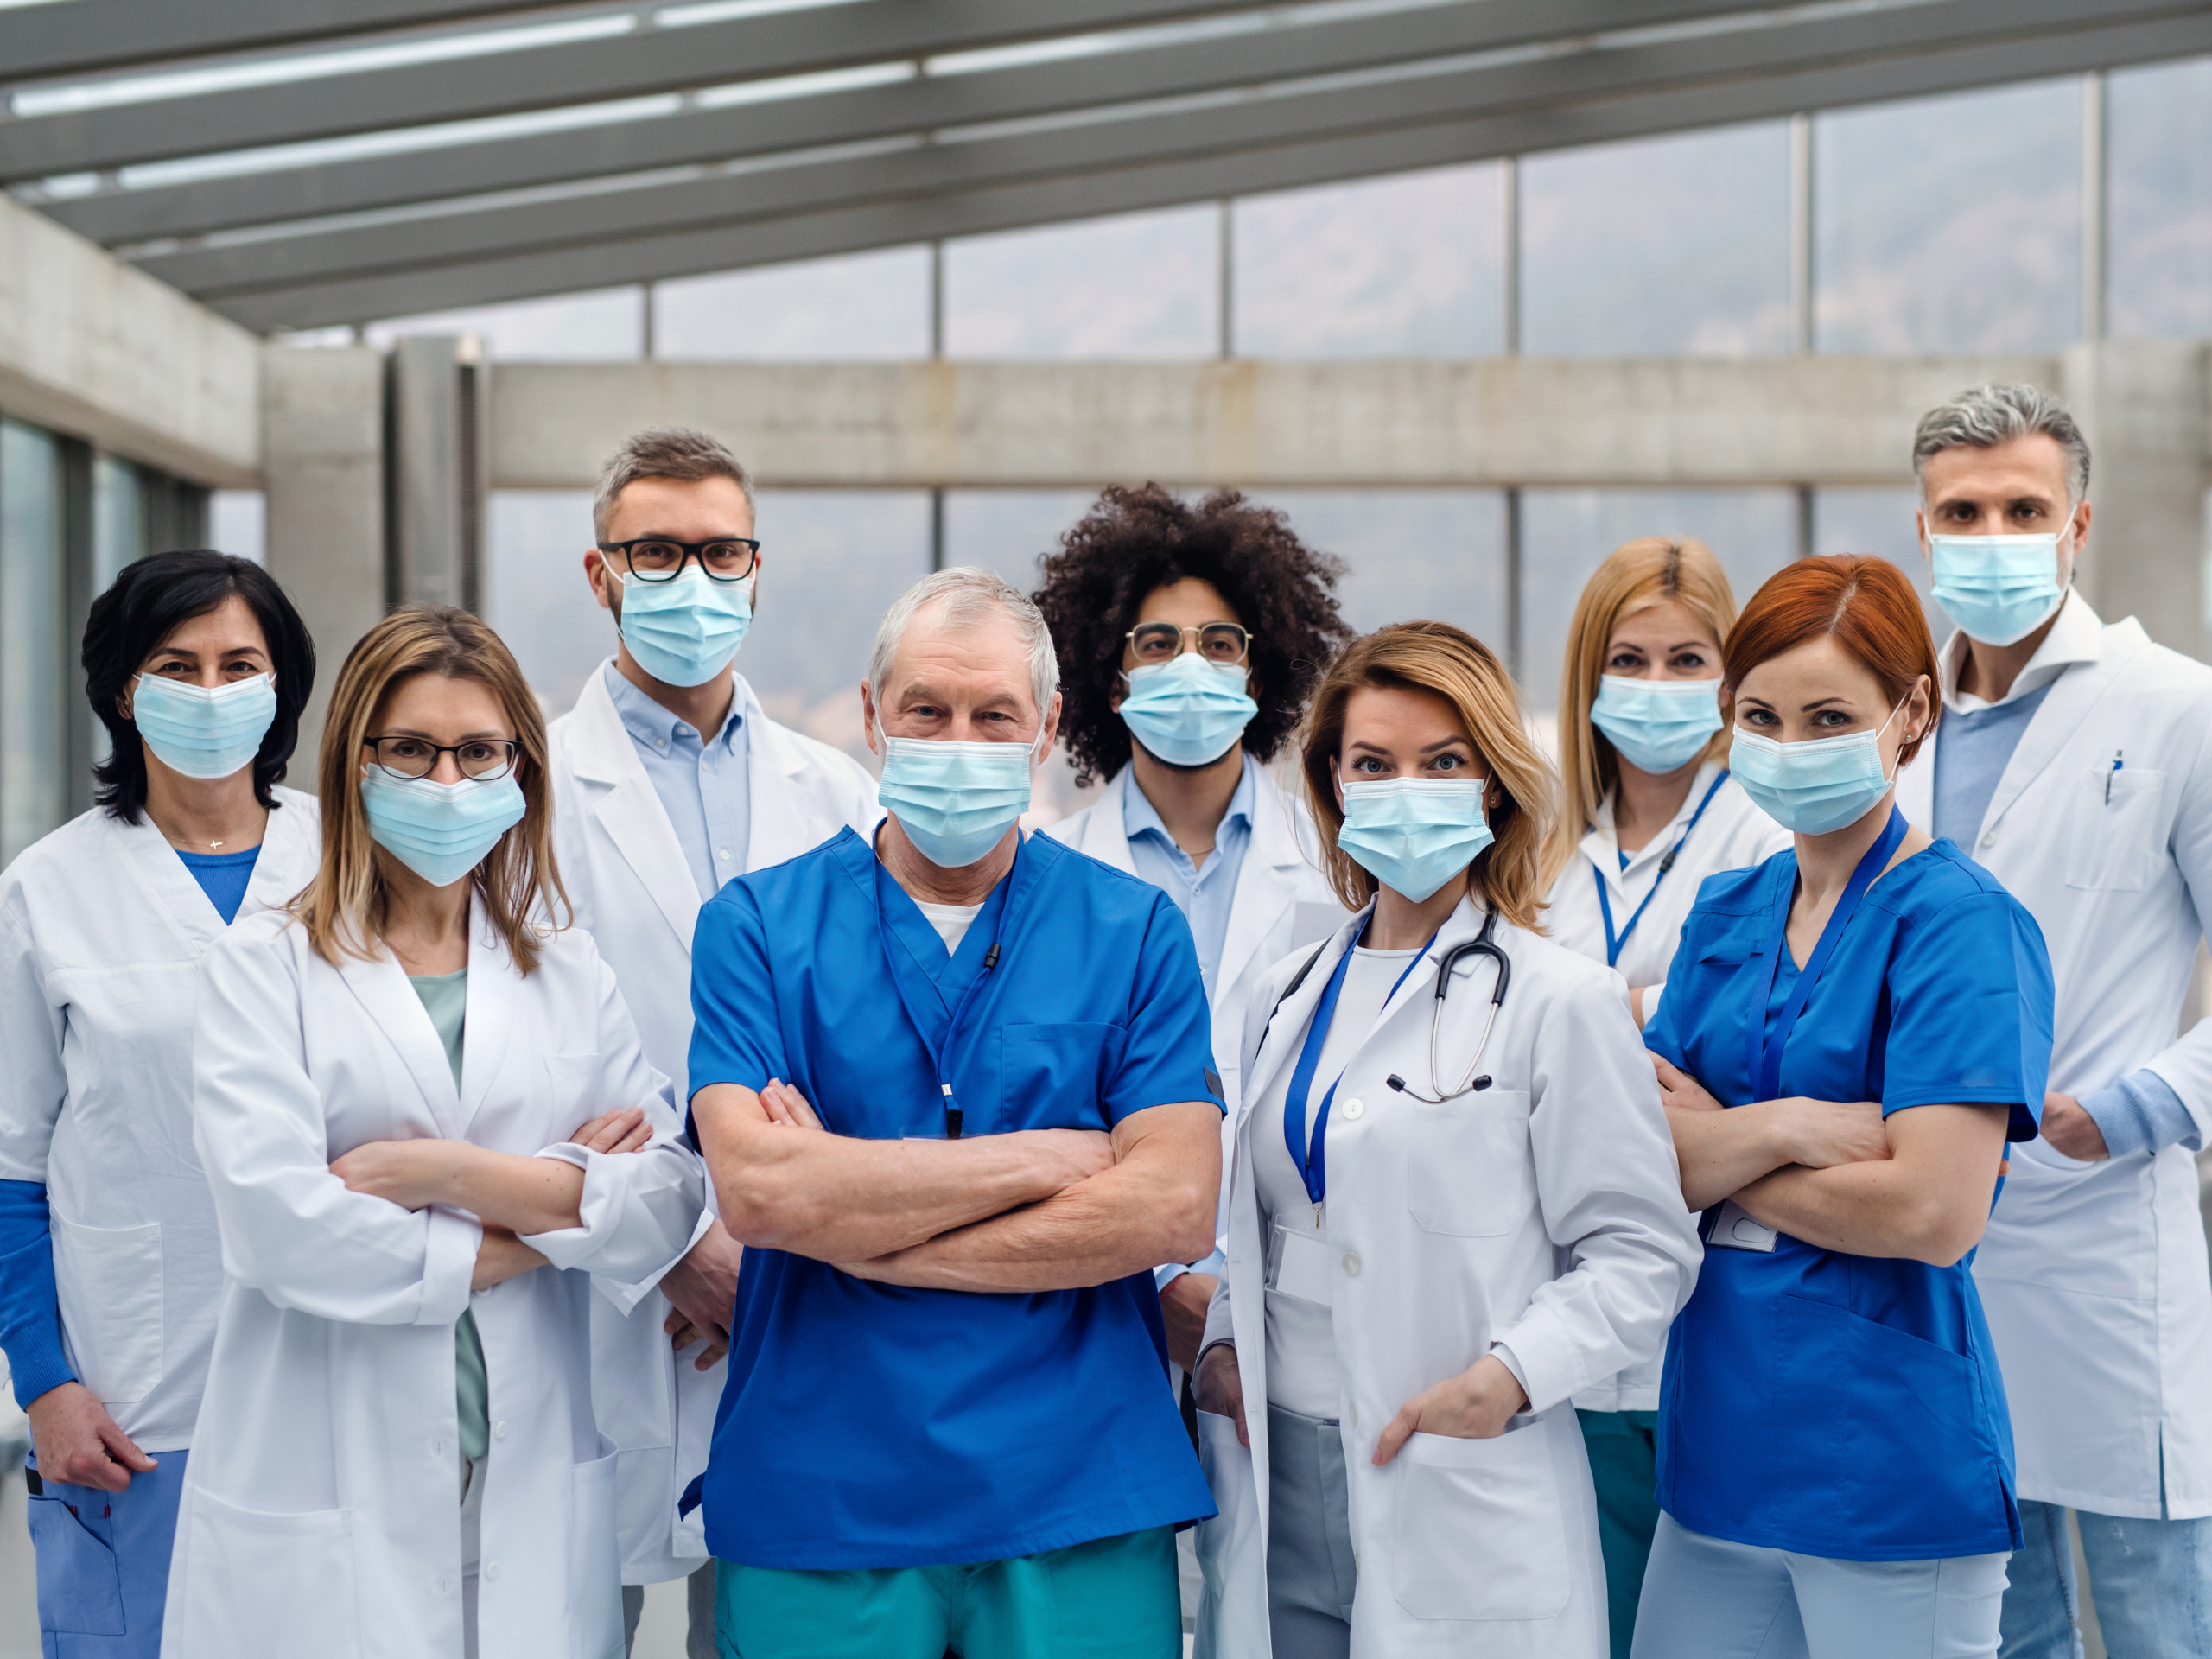 A group of nurses and doctors standing together with mask on